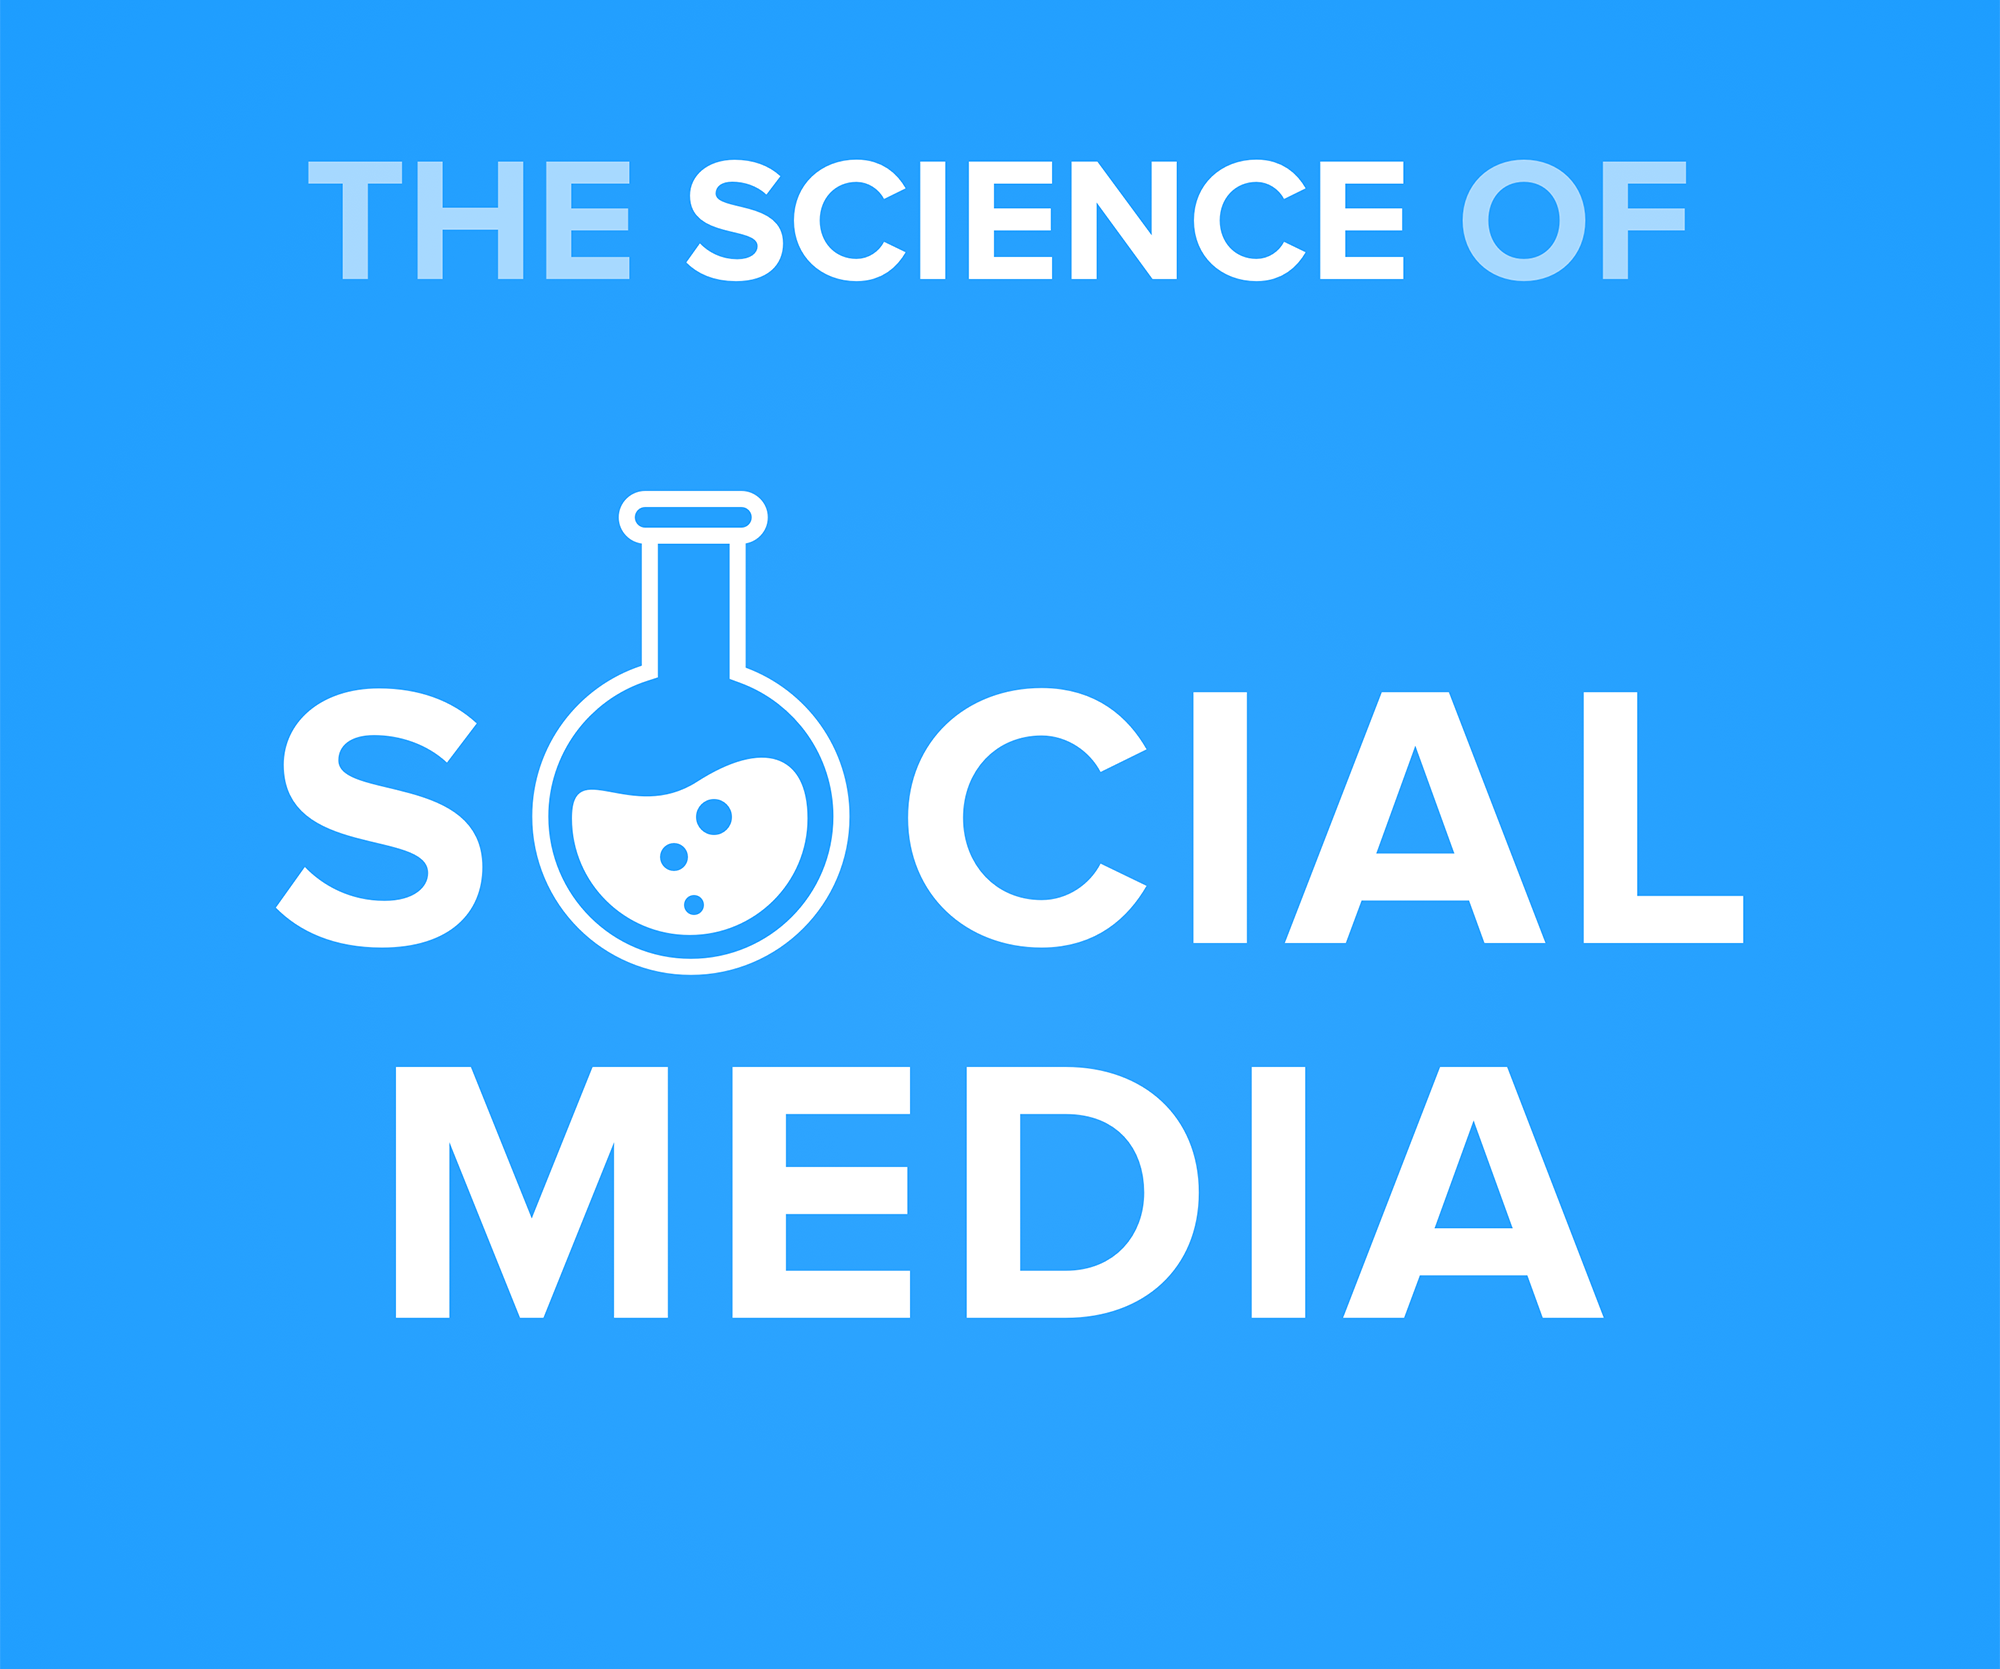 A photo of The Science of Social Media Cover Art